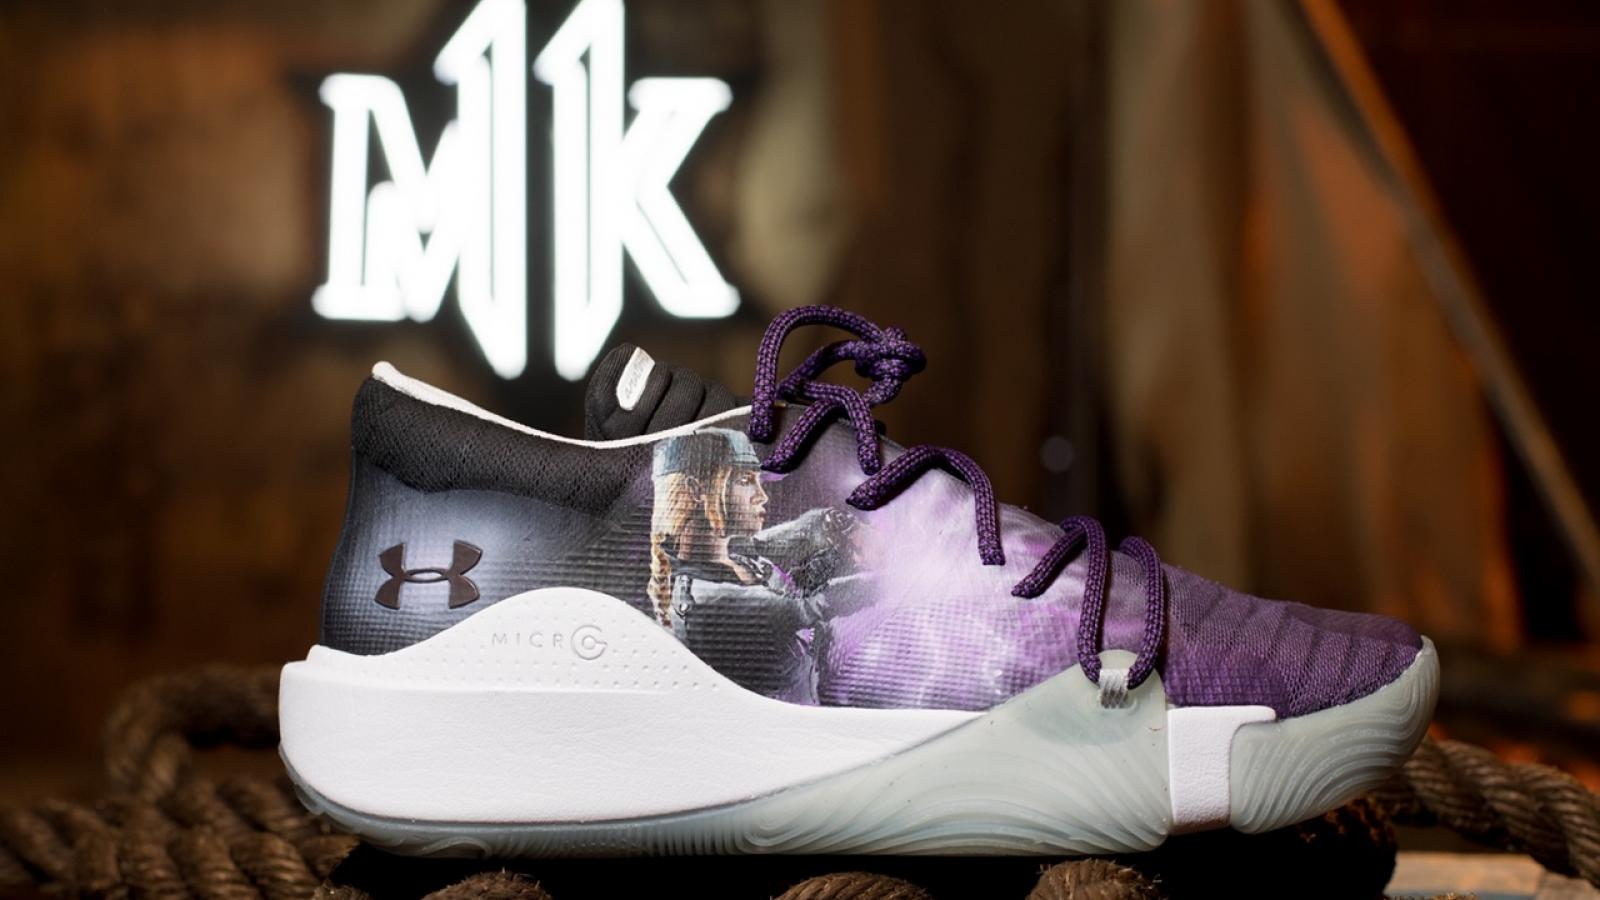 Mortal Kombat 11 and Under Armour on